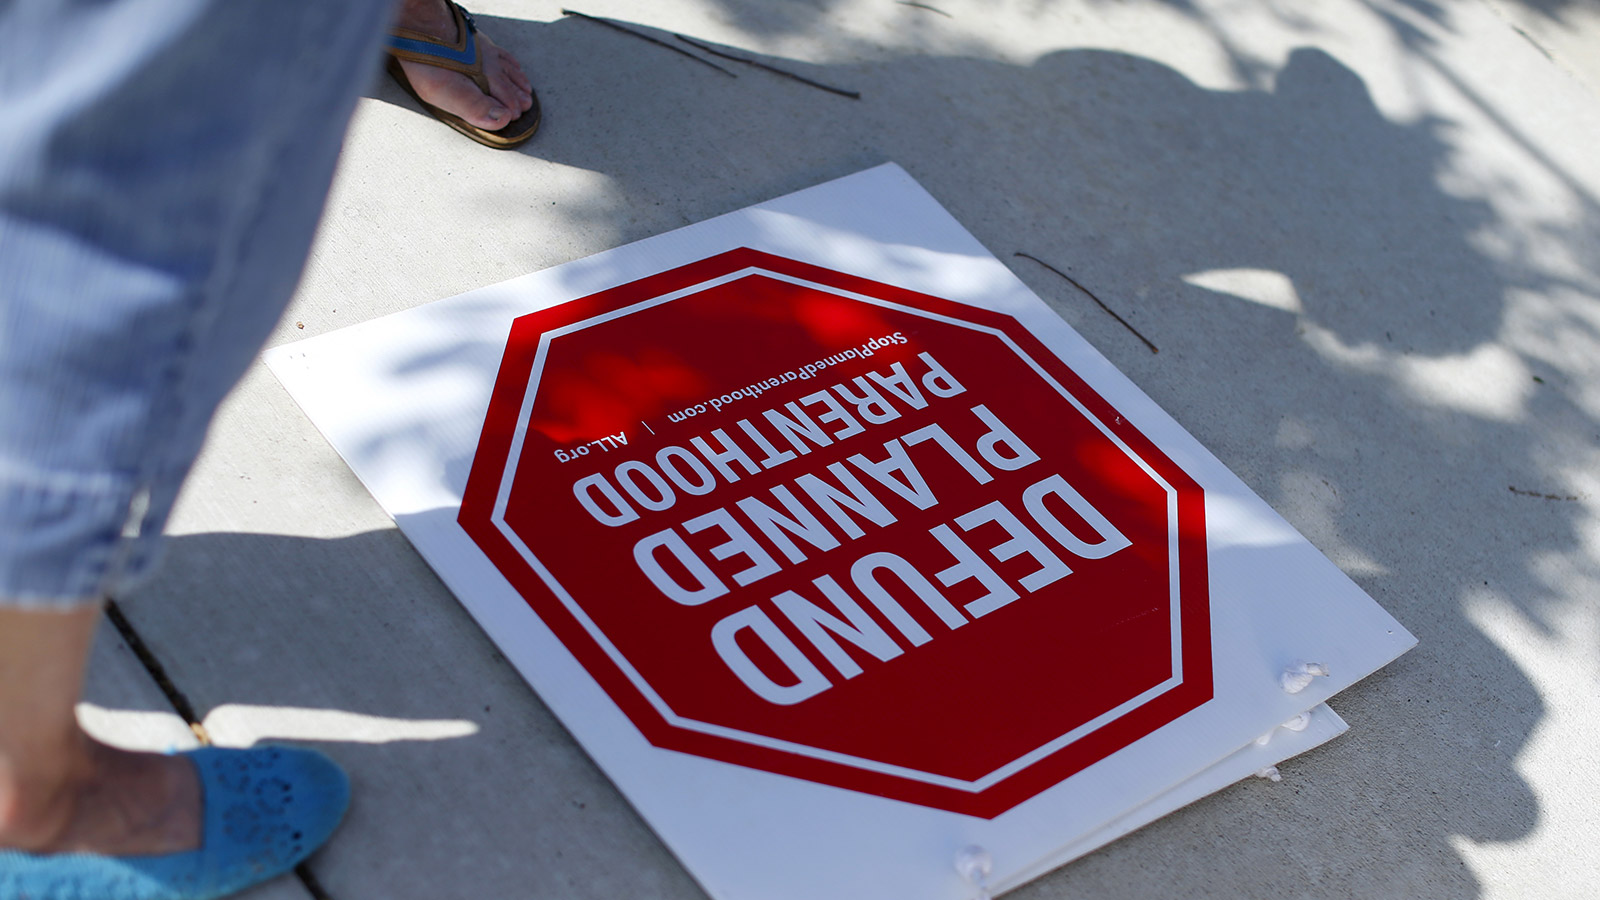 Protesters stand on a sidewalk outside a Planned Parenthood clinic in Vista, California August 3, 2015.